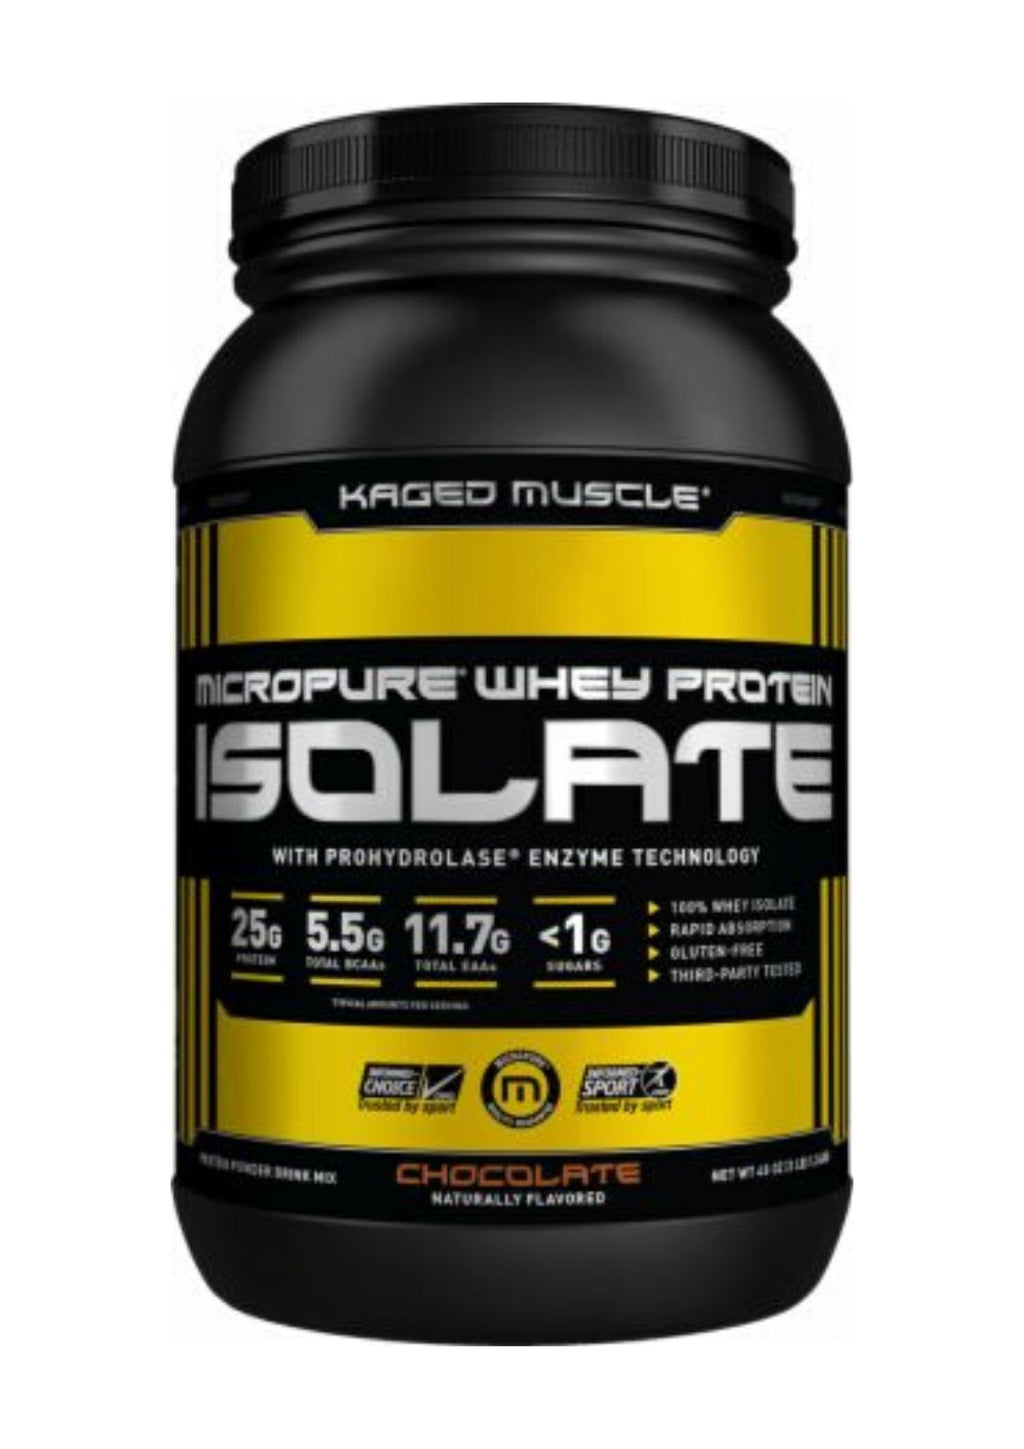 MicroPure Whey Protein Isolate - Making Moves Daily